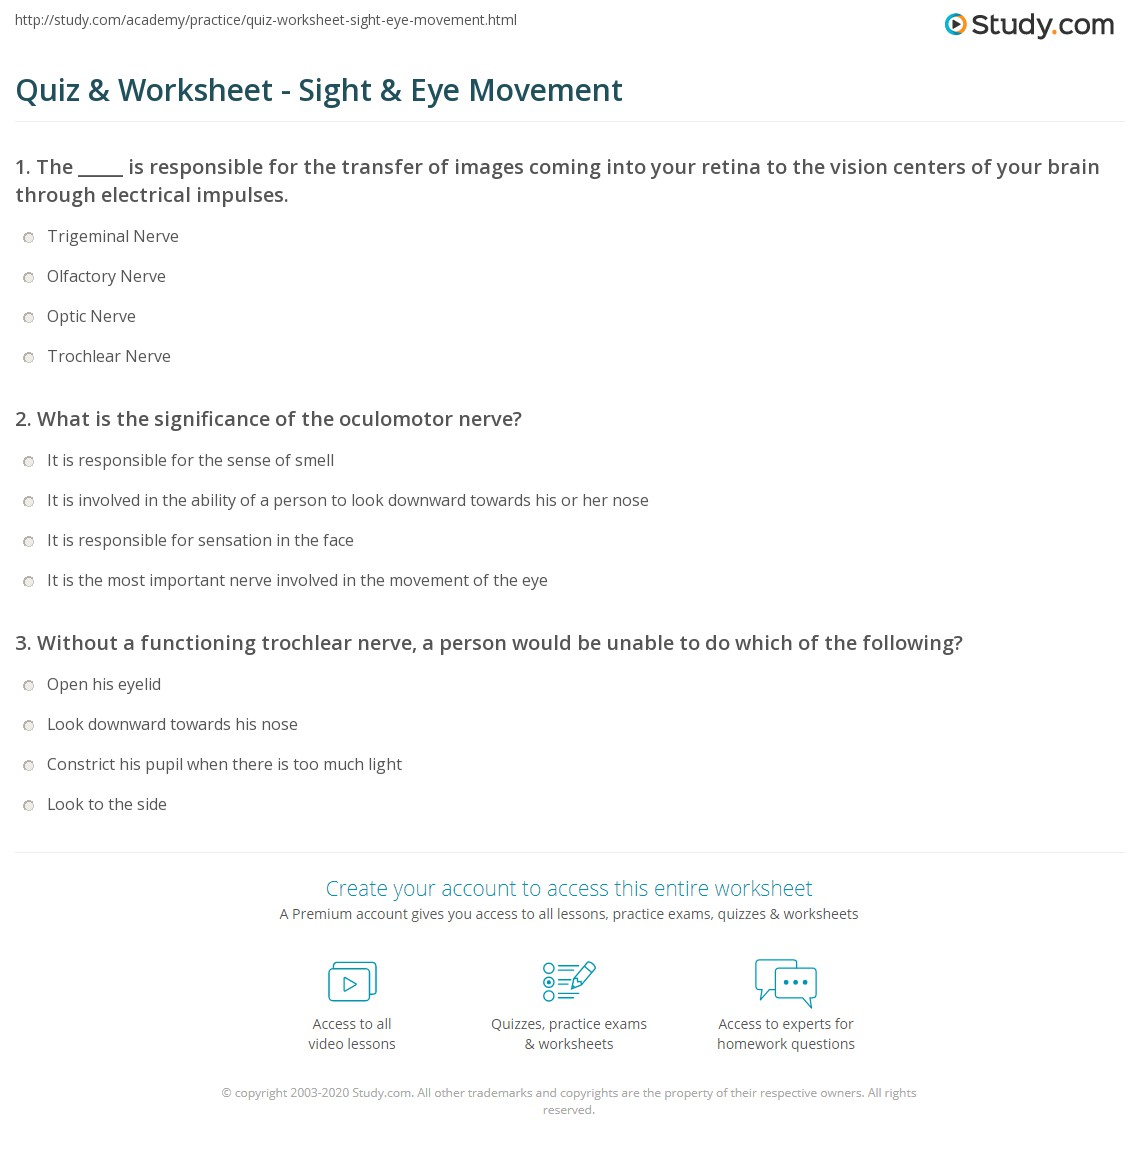 Quiz & Worksheet - Sight & Eye Movement | Study.com